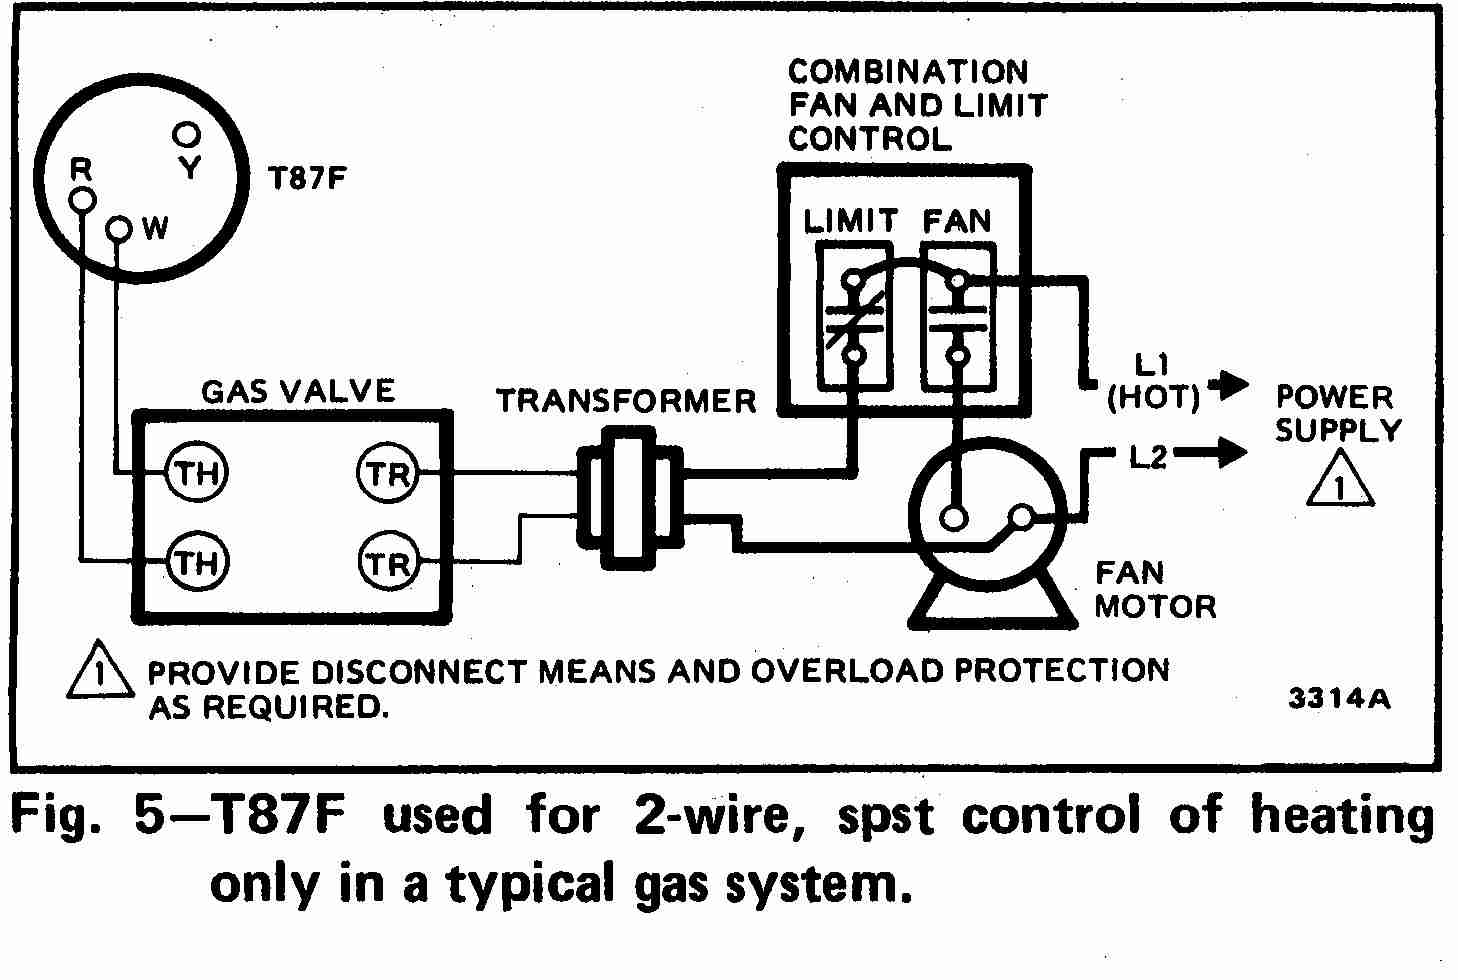 TT_T87F_0002_2Wg_DJF guide to wiring connections for room thermostats central heating thermostat wiring diagram at soozxer.org